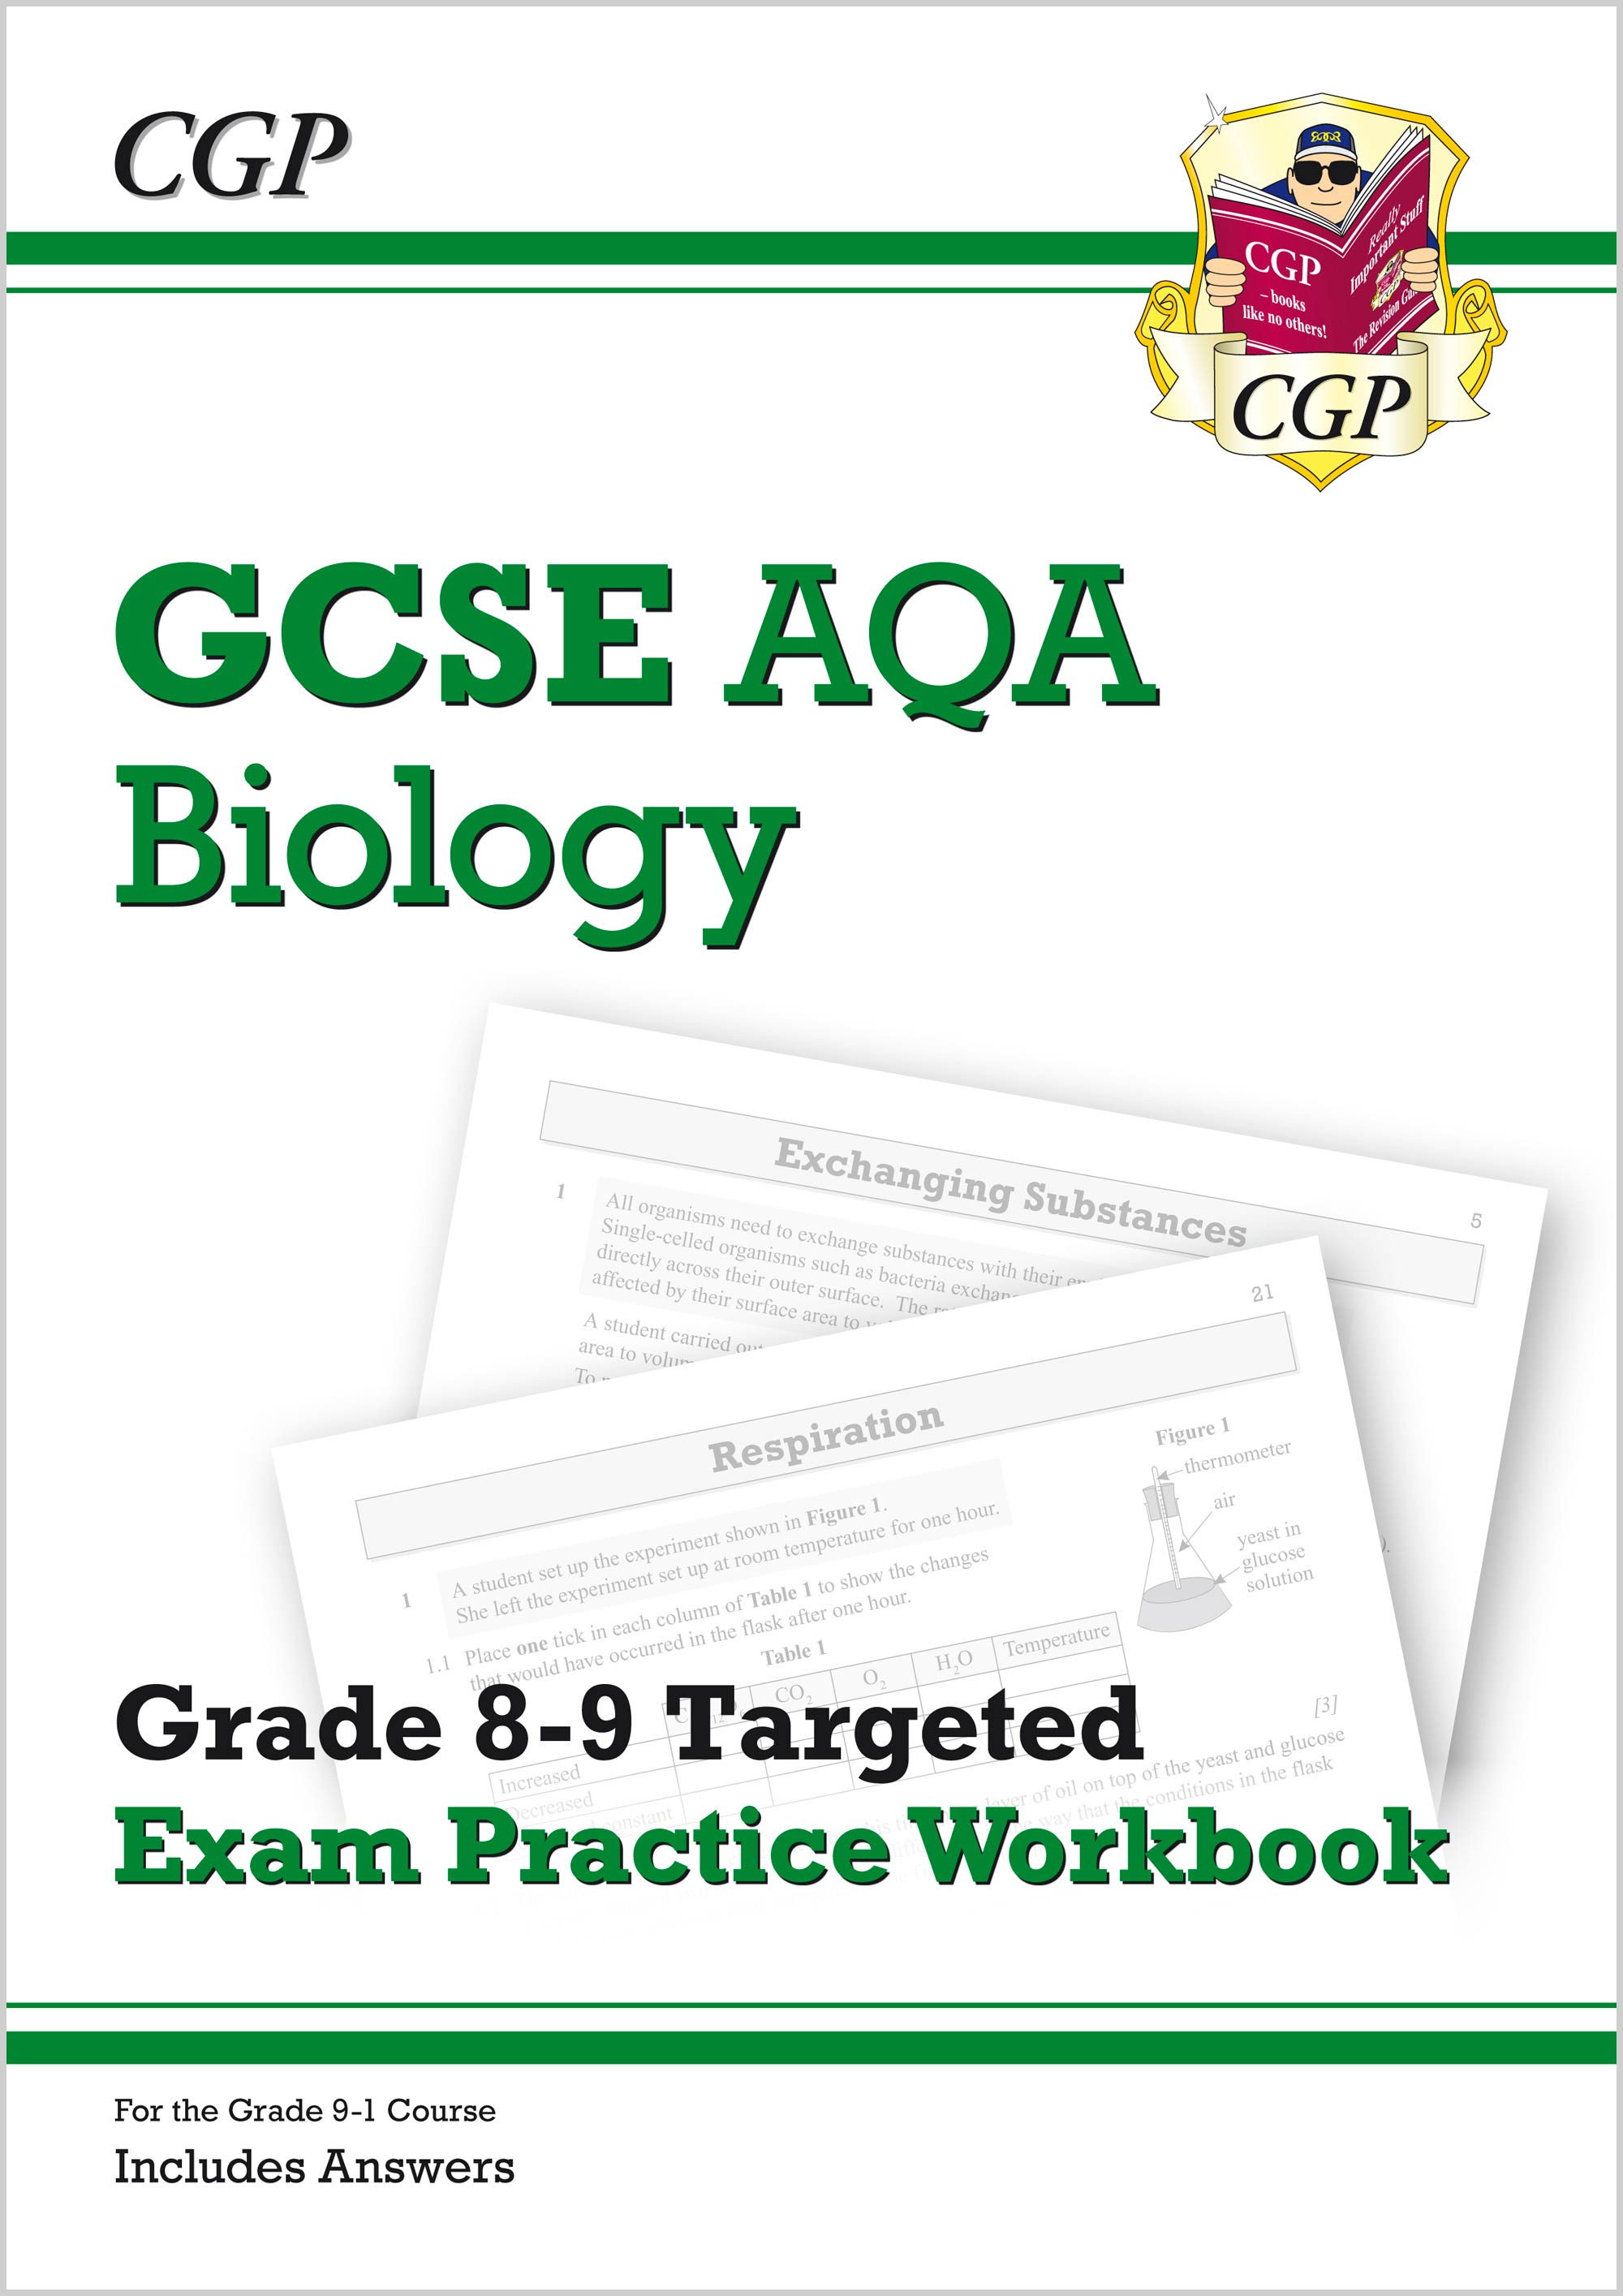 BA9Q41 - New GCSE Biology AQA Grade 8-9 Targeted Exam Practice Workbook (includes Answers)